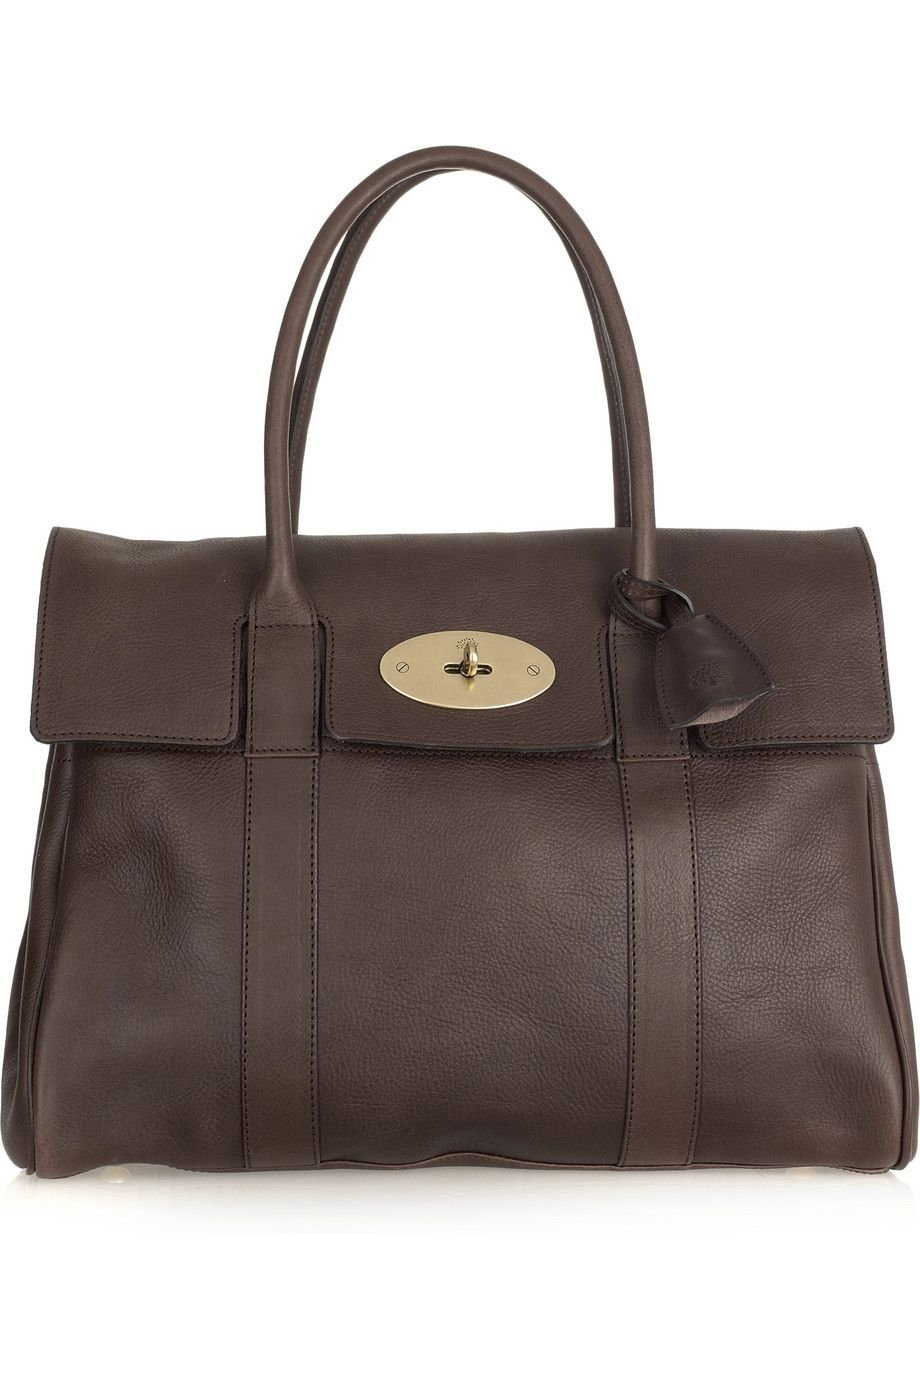 d1cde64bbe  Mulberry Bayswater. Another bag I considered buying in London but  chickened out!